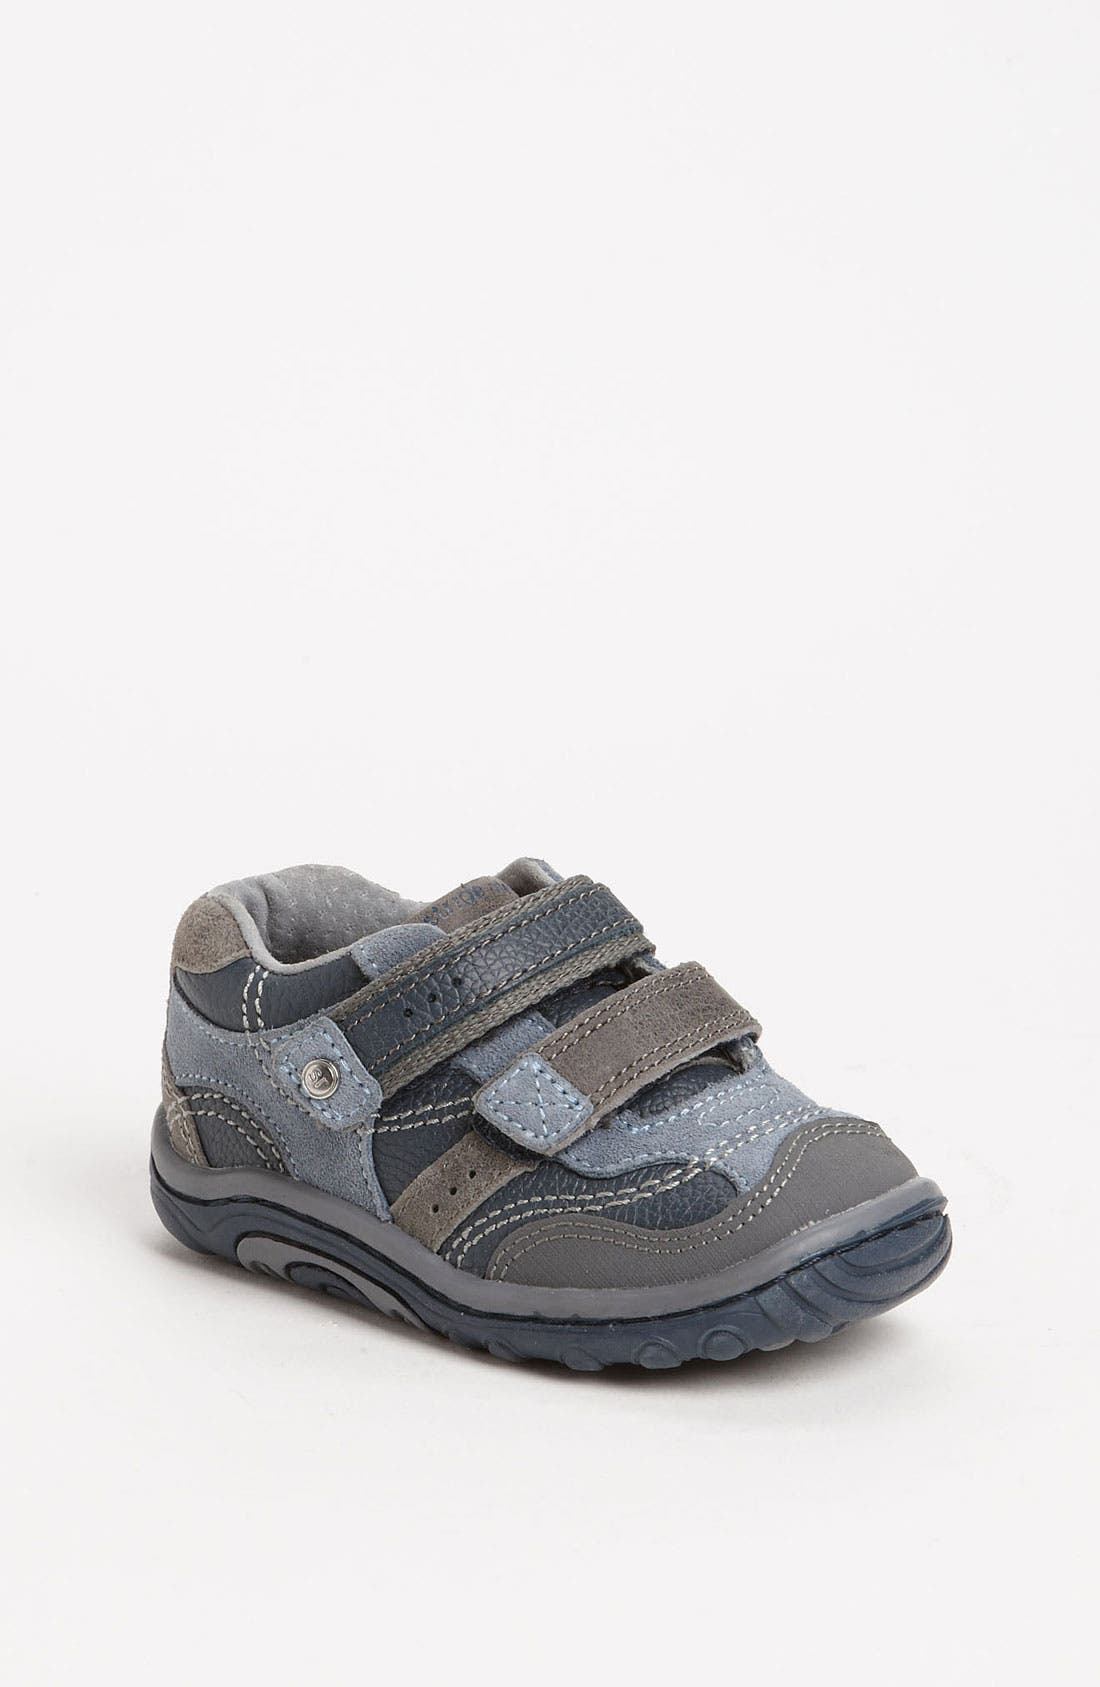 Main Image - Stride Rite 'Will' Sneaker (Baby, Walker & Toddler)